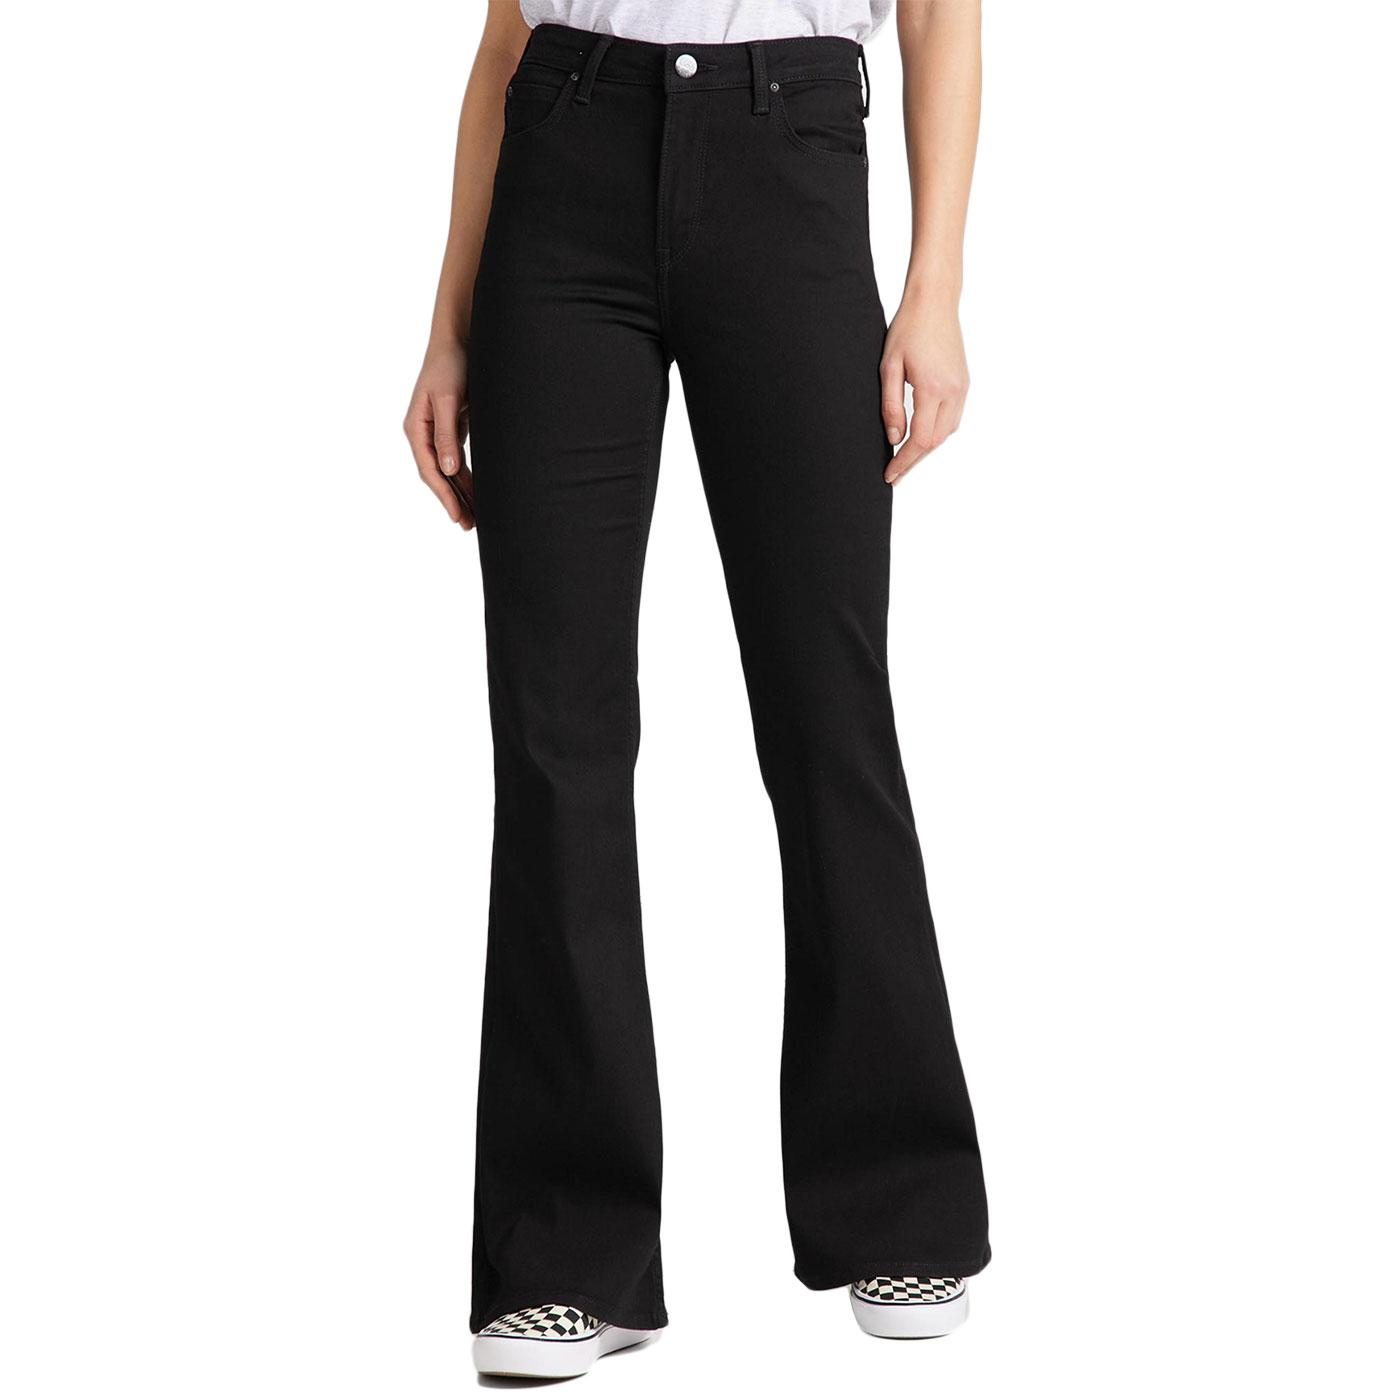 Breese LEE Retro 70s High Waist Flared Jeans (BR)